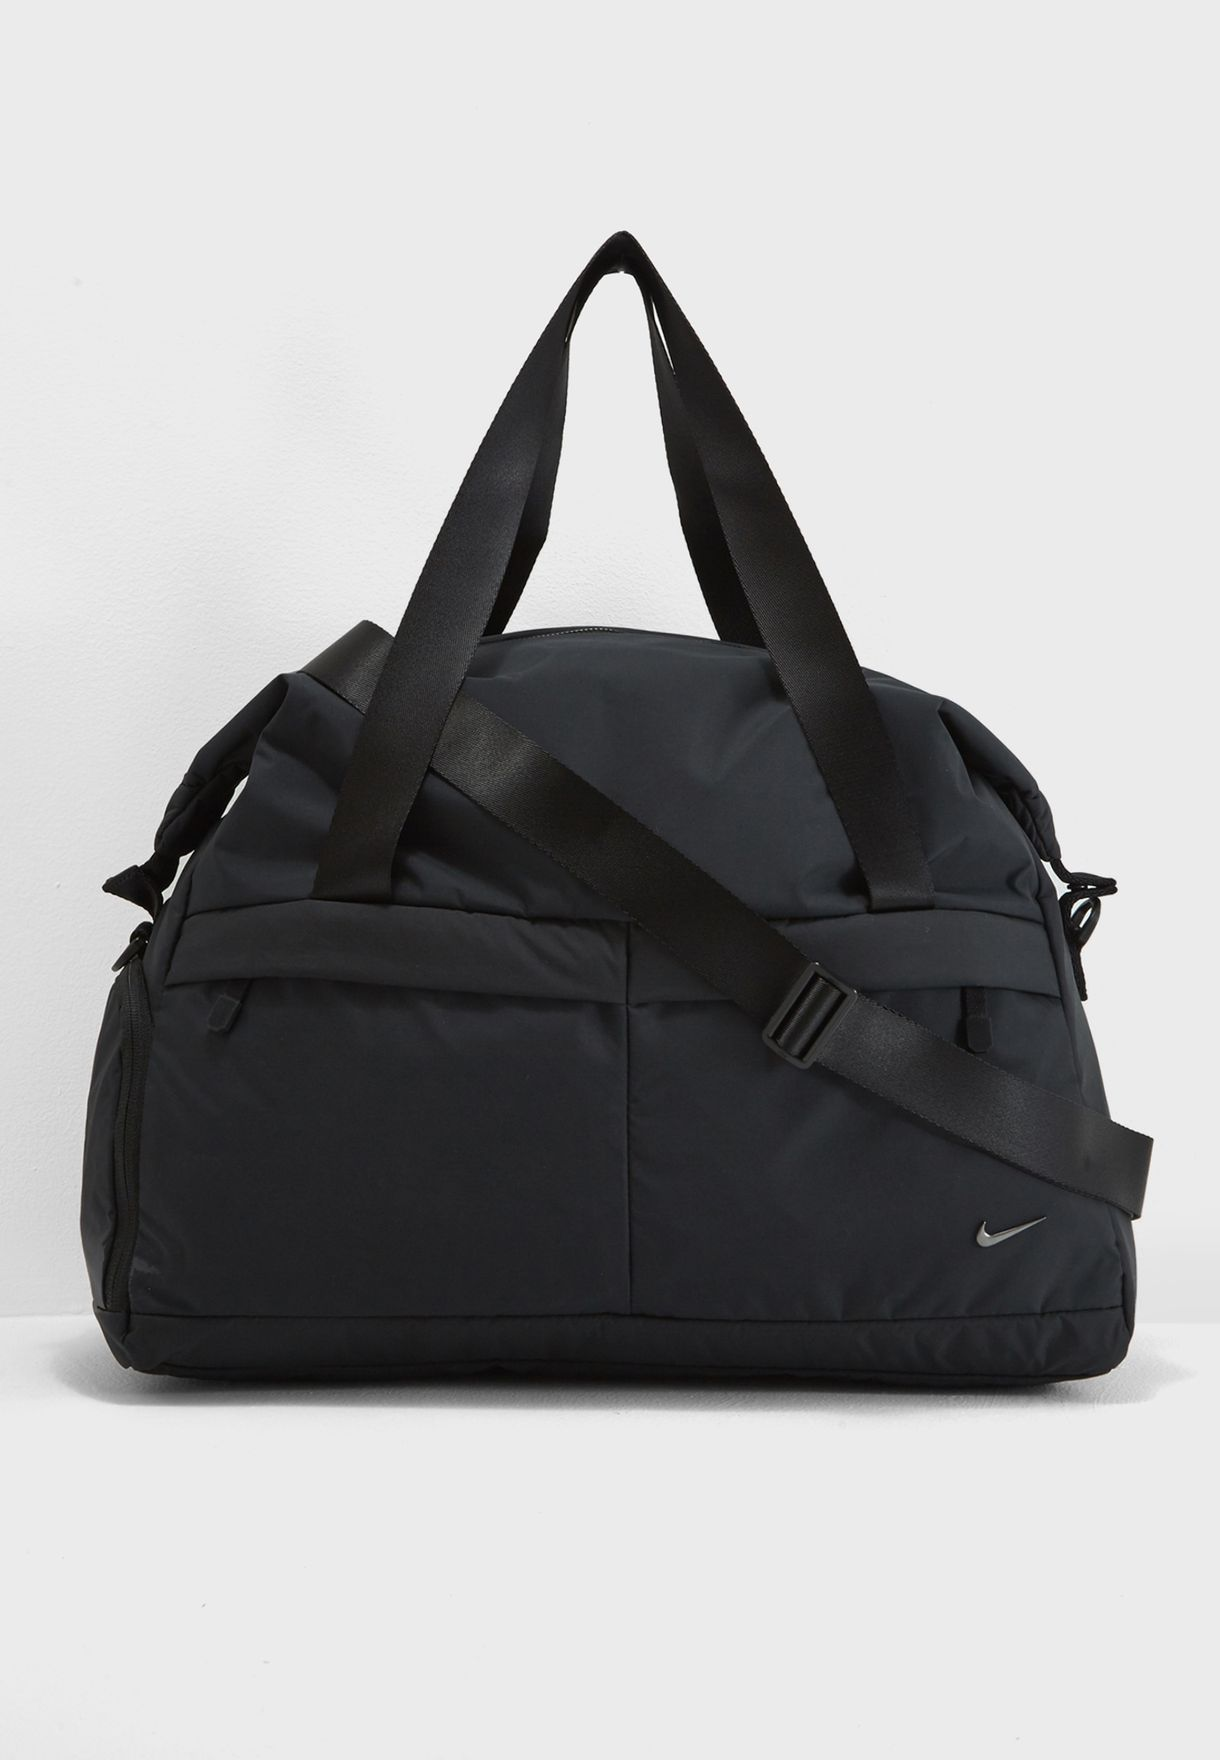 8749f37232 Shop Nike black Legend Club Duffel BA5441-010 for Women in Qatar ...